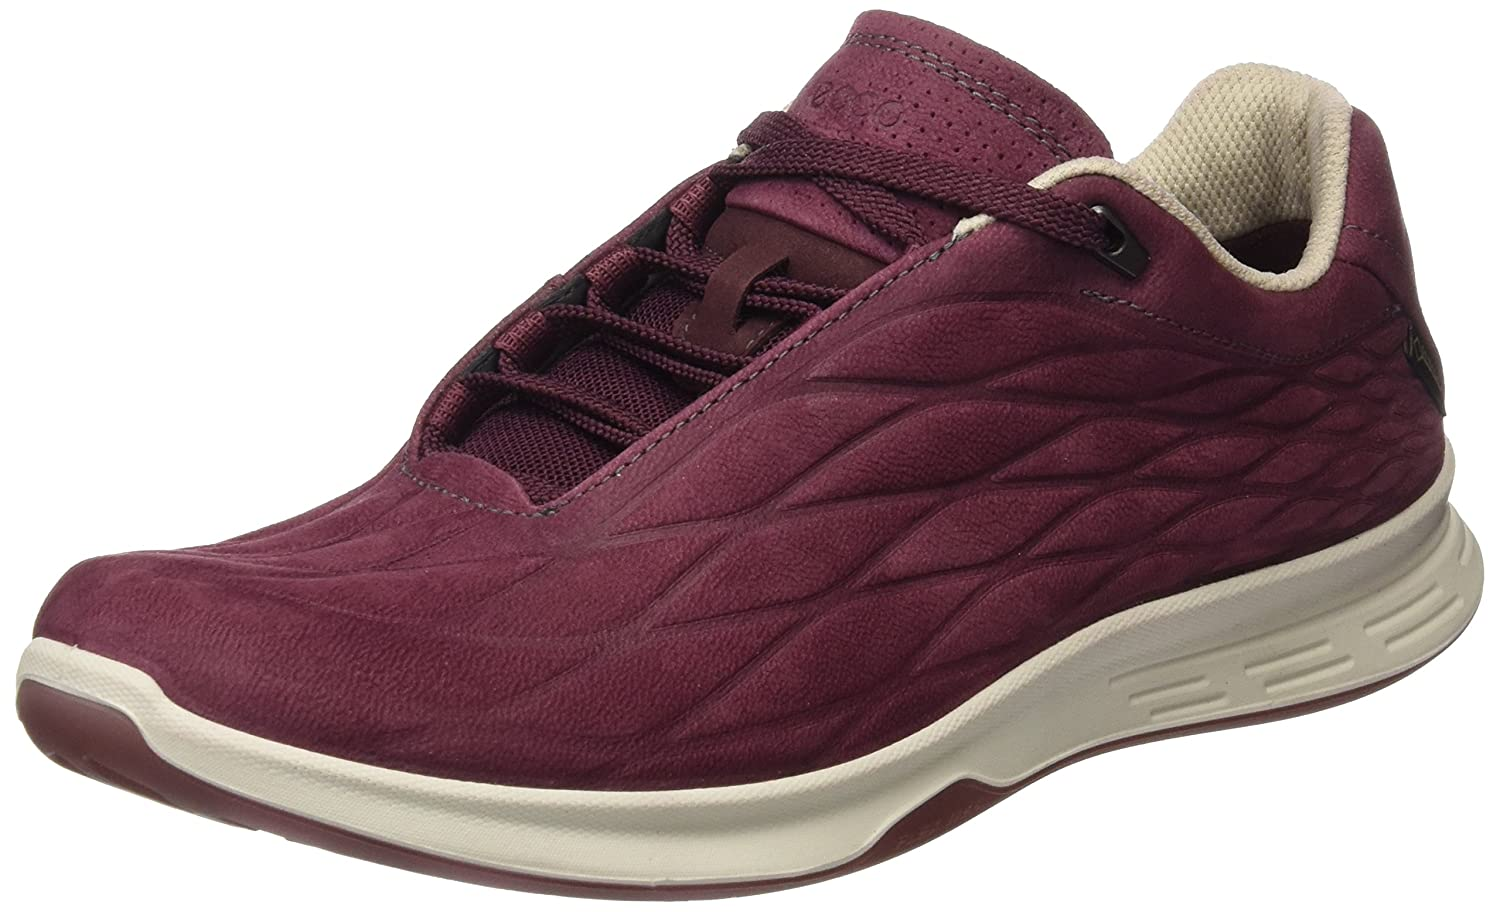 Red (Bordeaux 2070) ECCO Women's Exceed Low Fashion Sneaker